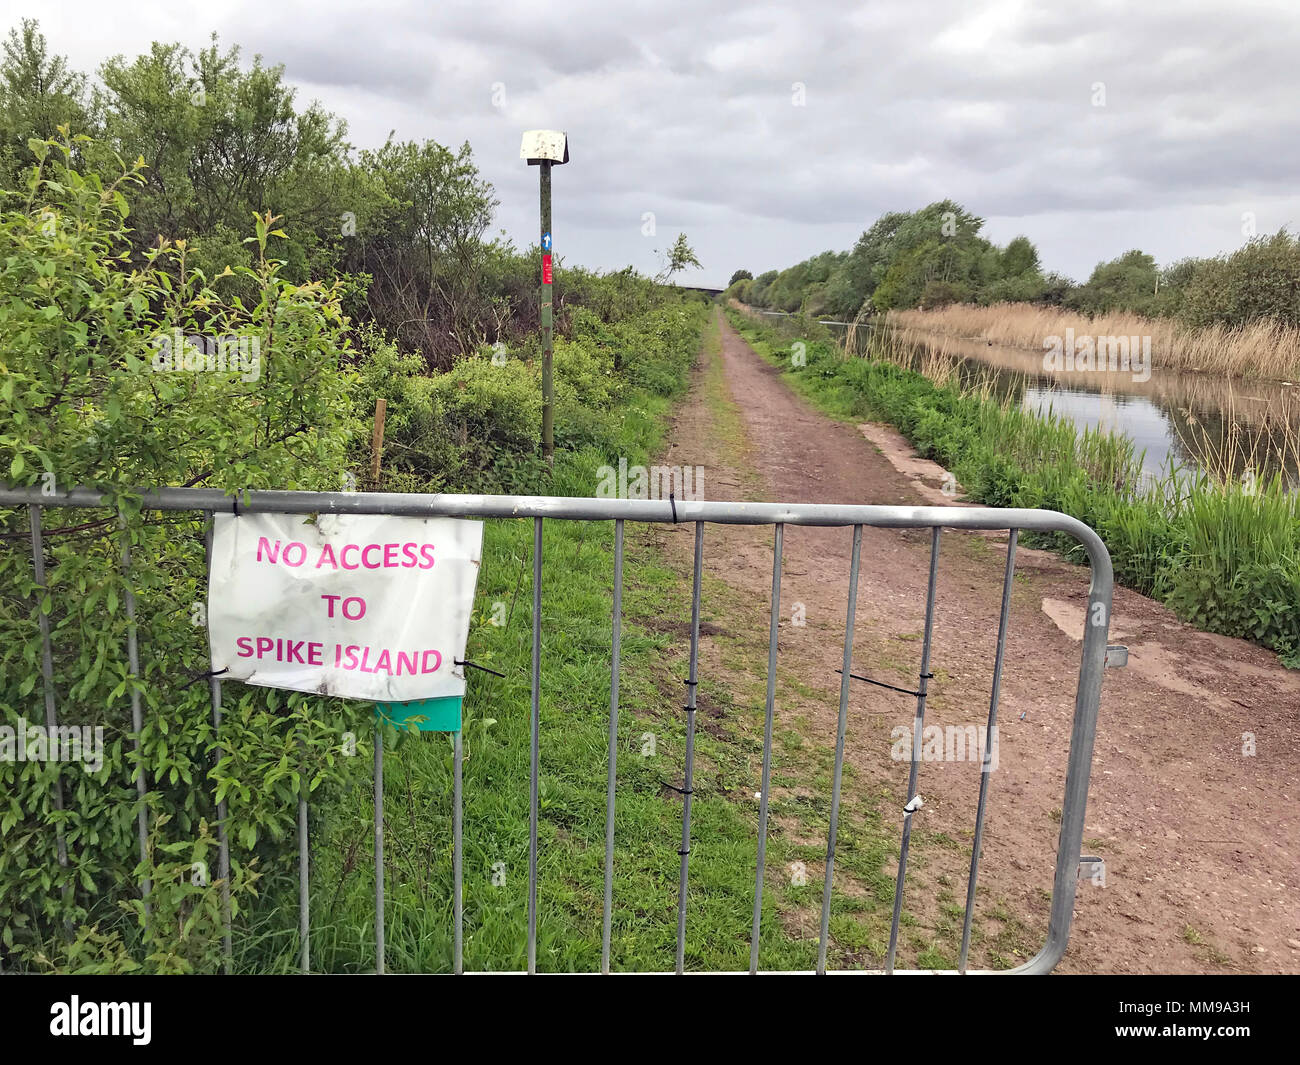 GoTonysmith,@HotpixUK,Trail,at,new,Mersey,crossing,Toll,Toll Crossing,path,pathway,cycle way,cycle,way,Runcorn,closed,broken,trail,track,Spike Island,disruption,barrier,close,problem,inconvenience,sign,signs,gravel,MTB,Mountain Bike,biker,cyclist,cycling,summer,spring,temporary,temporary sign,poor,bad,not good